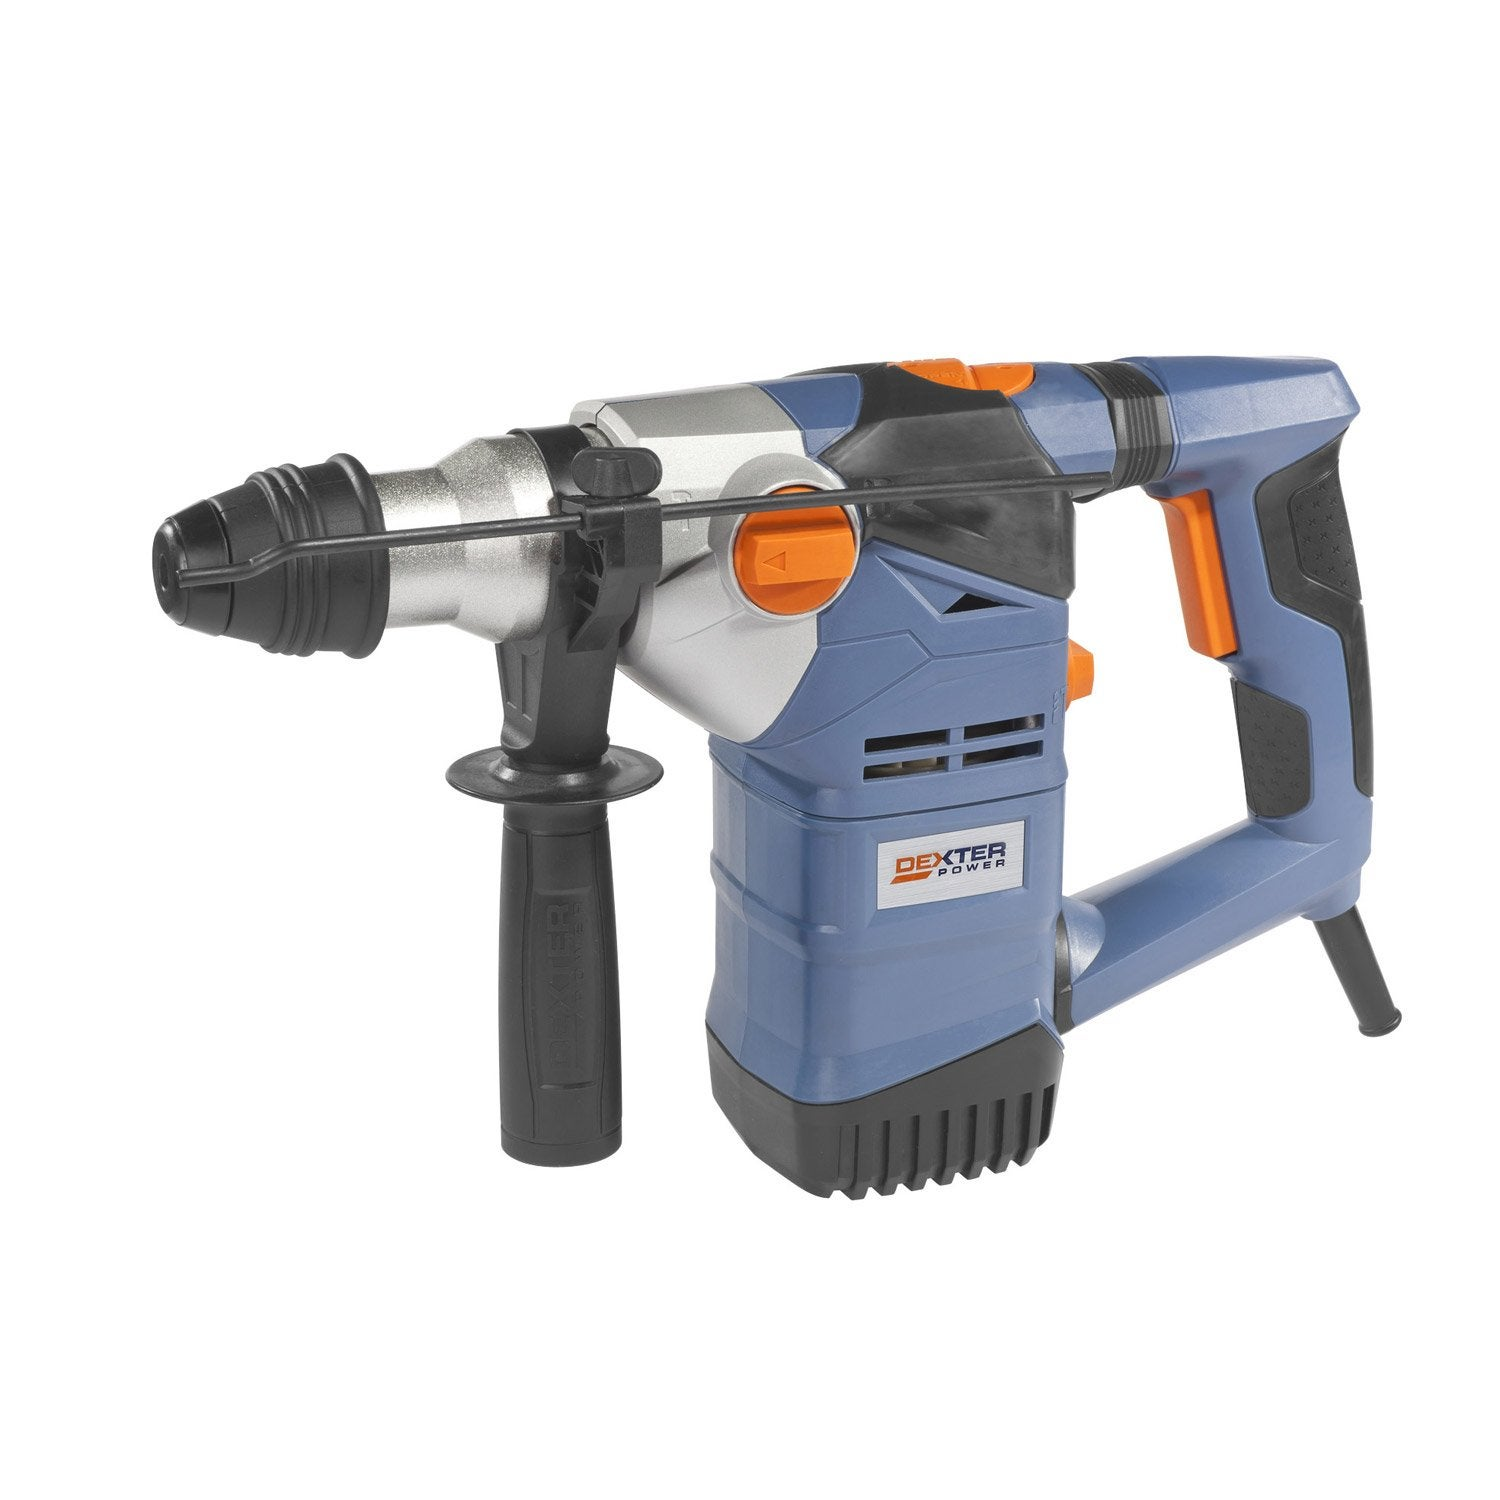 Marteau perforateur dexter power 1500 w leroy merlin - Location outillage leroy merlin ...